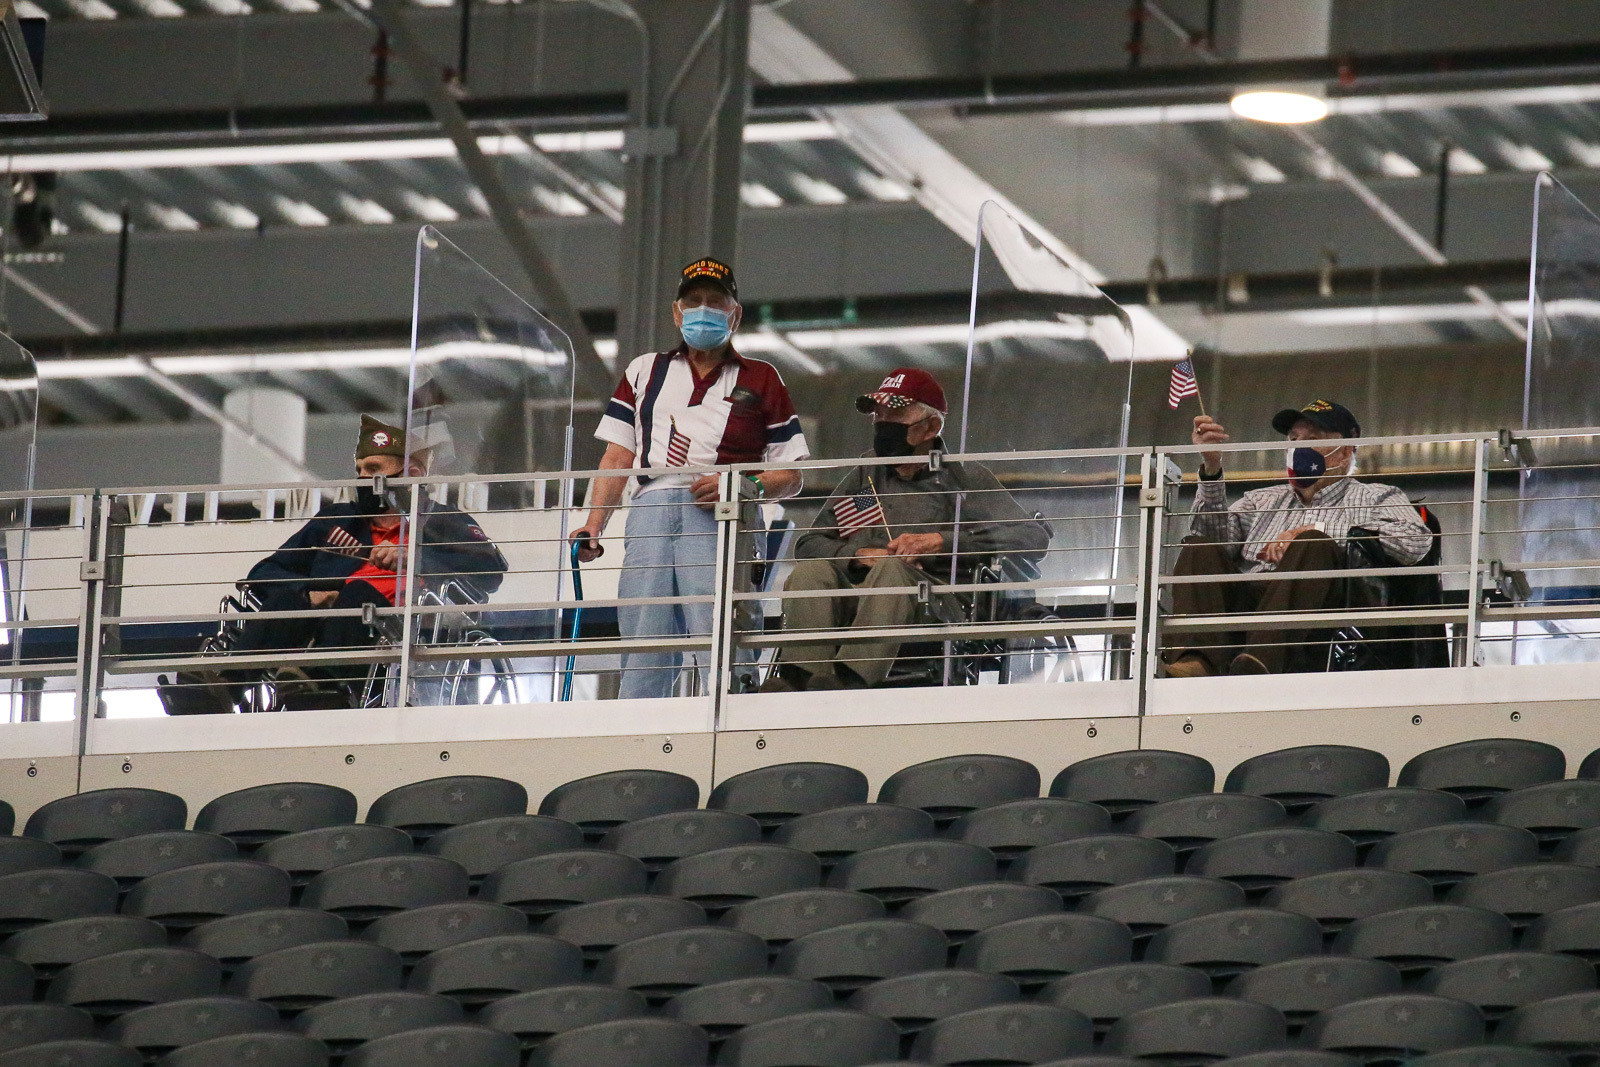 For the second year in a row, the Feld crew welcomed a group of WWII vets who enjoyed watching the action on press day.